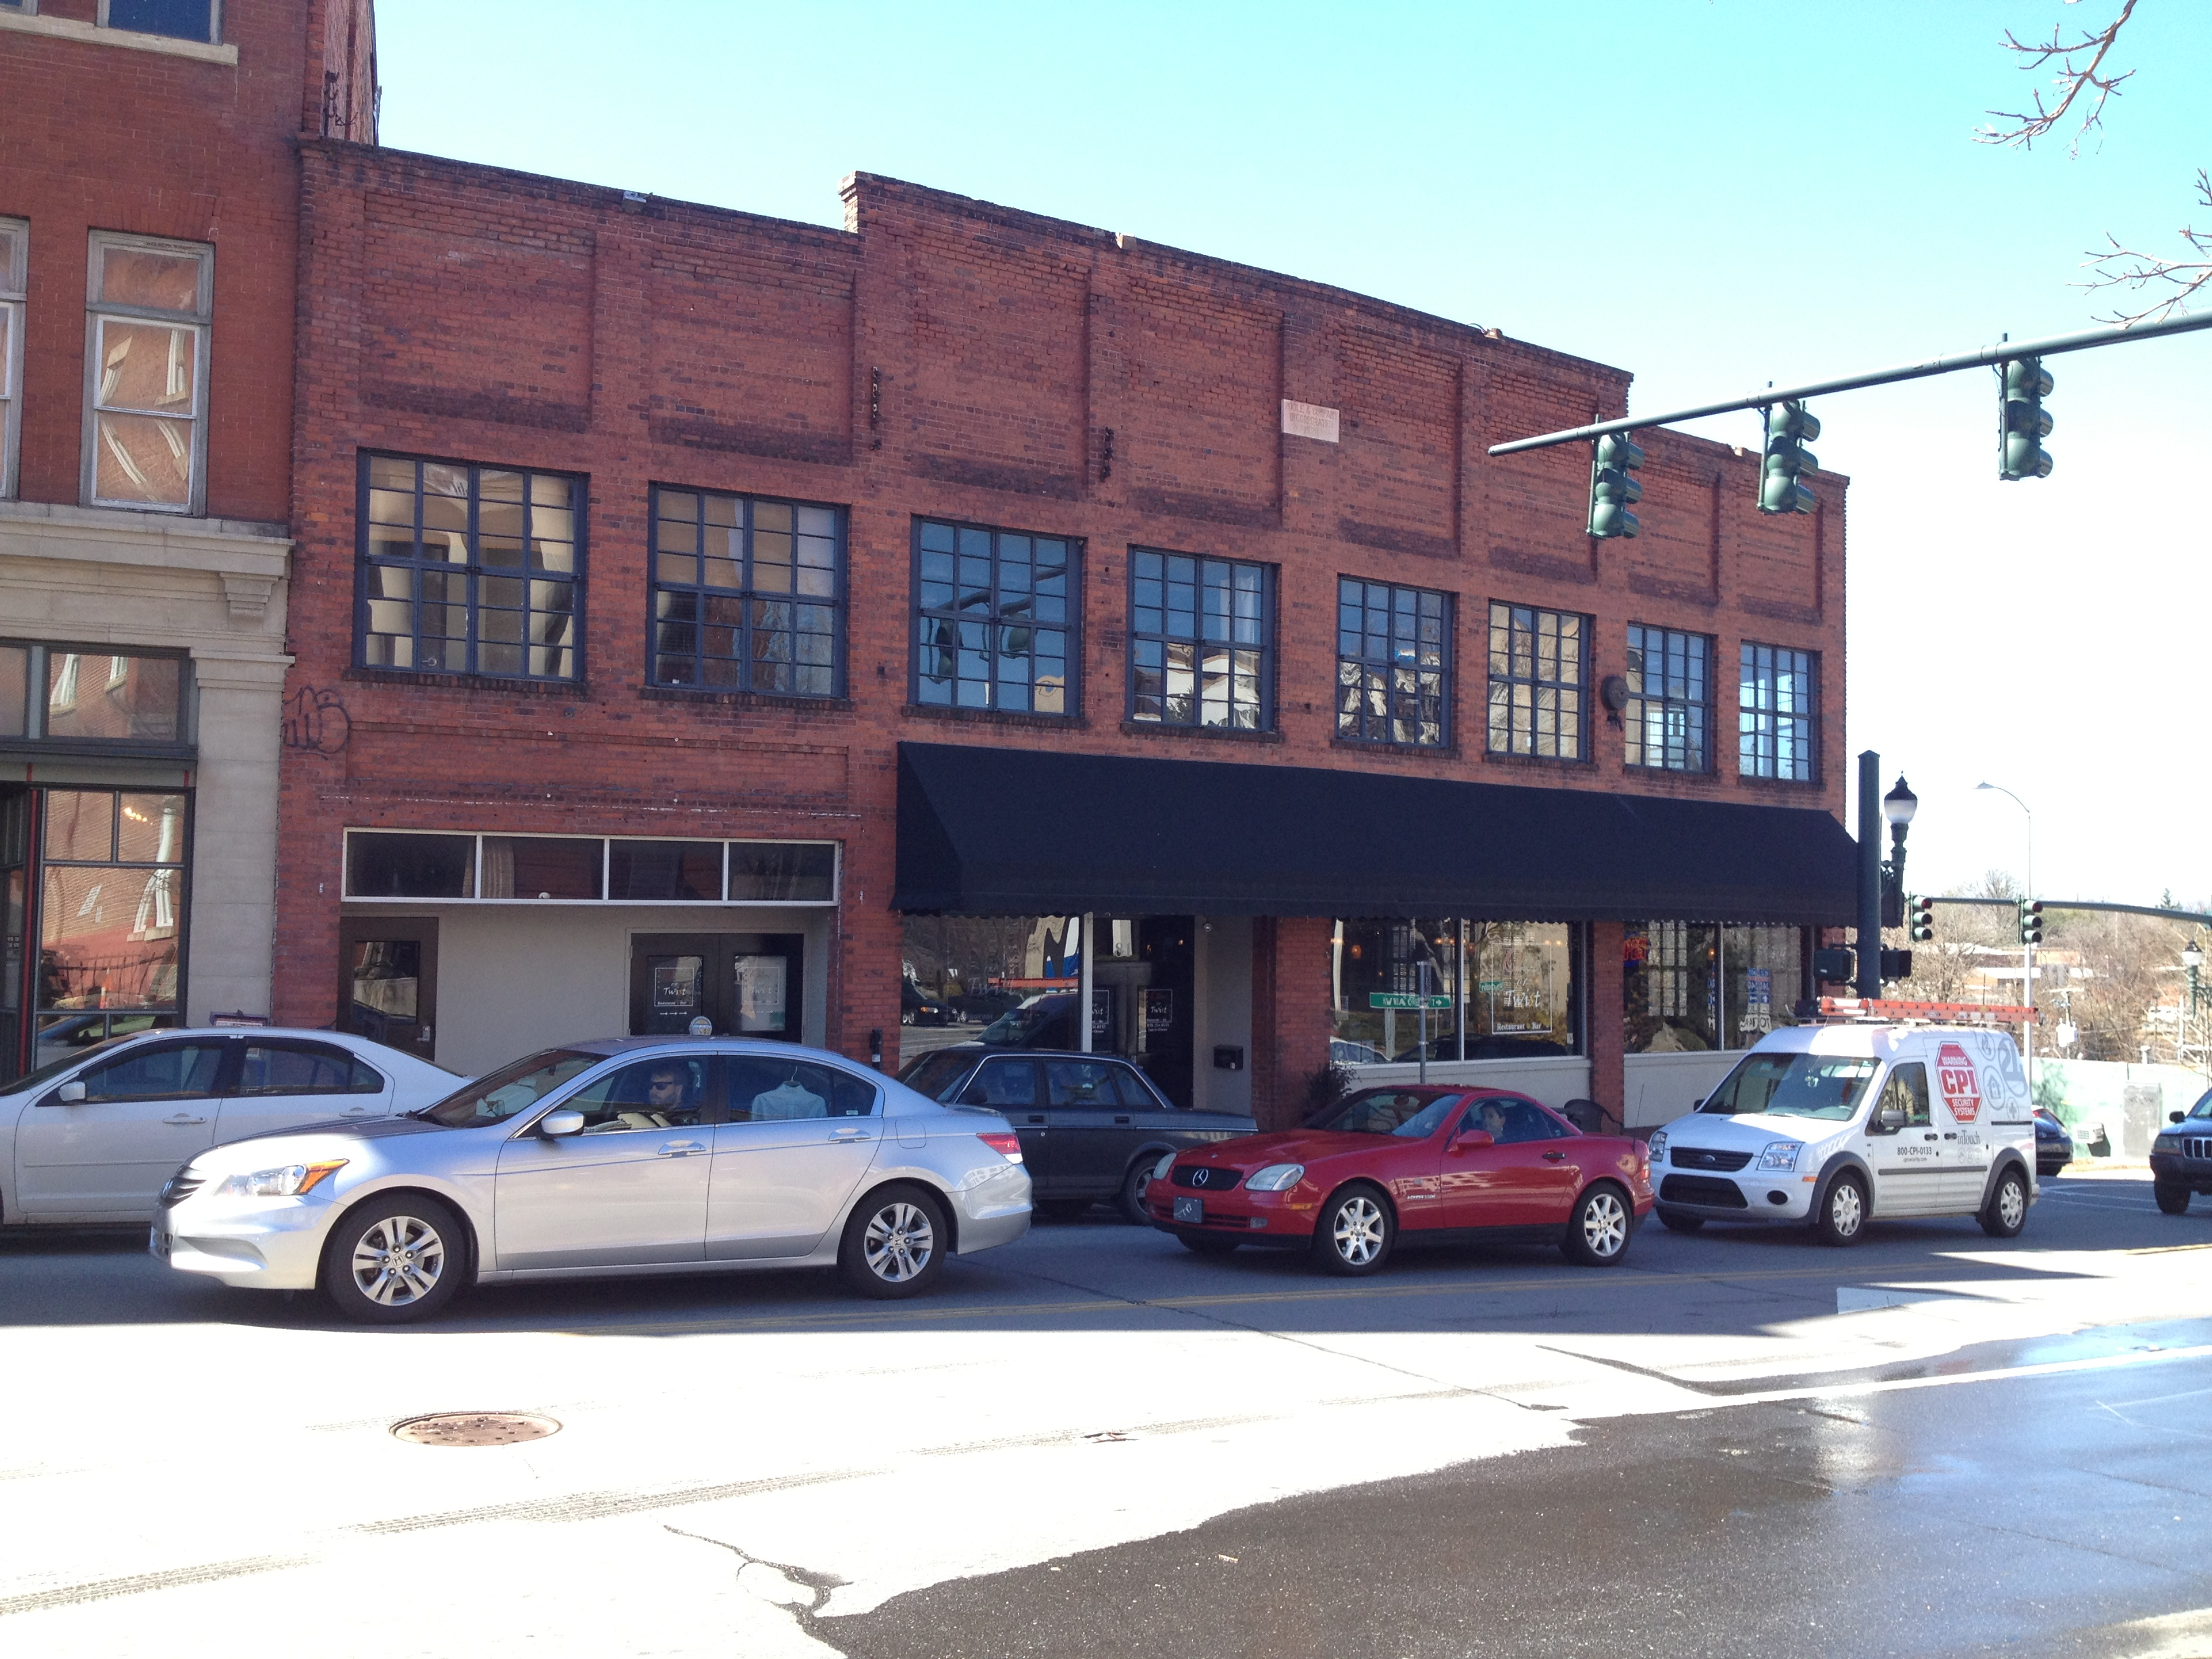 Sold: 81 Broadway in downtown Asheville for $1.2 million